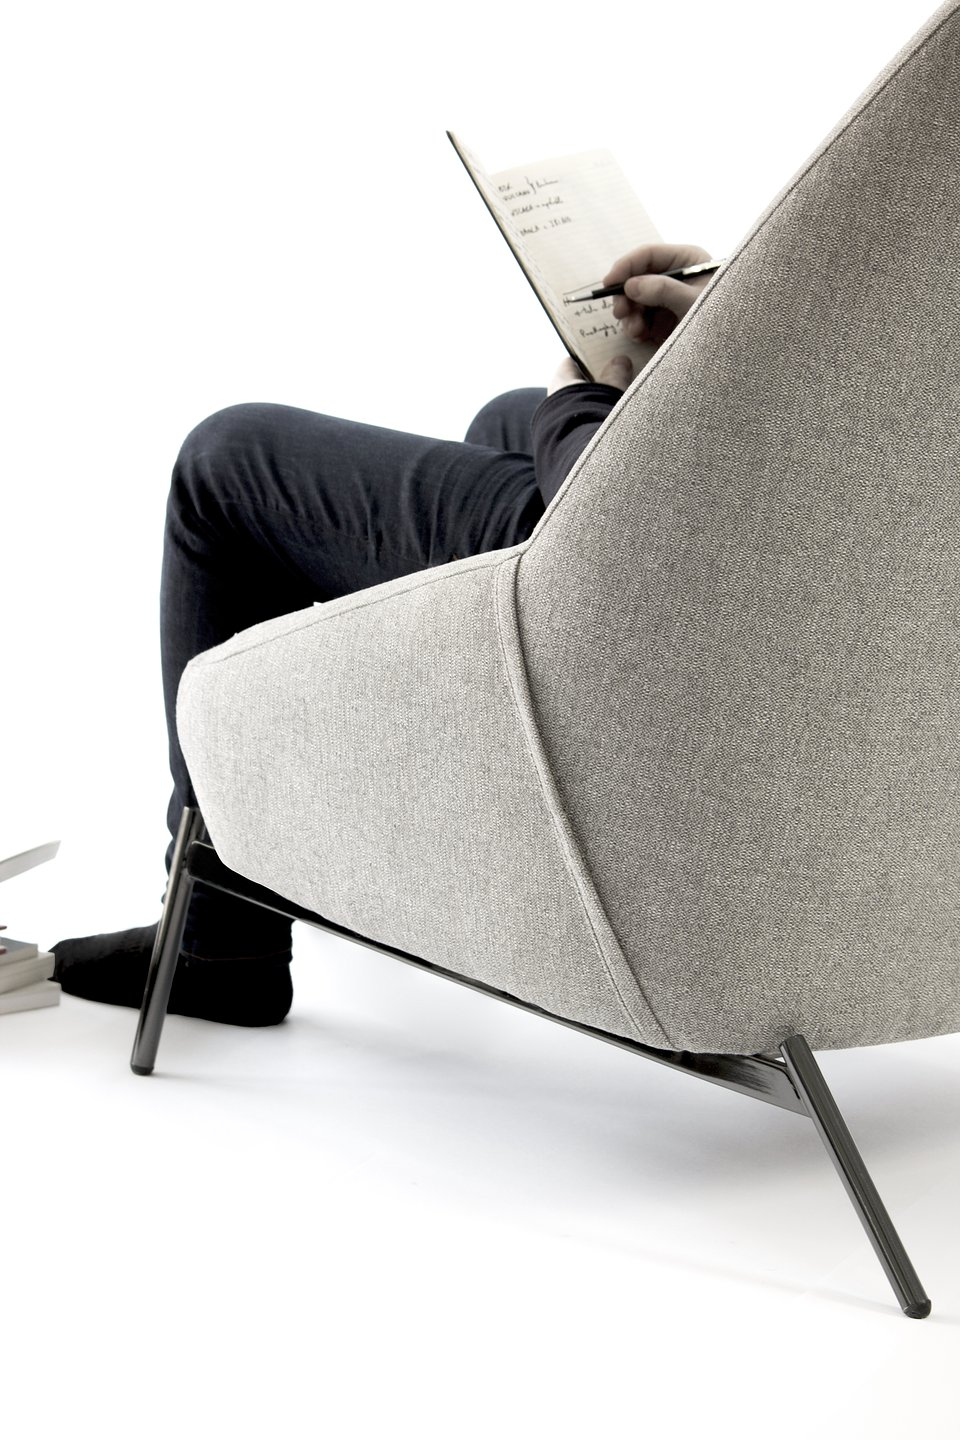 Gull armchair for Koo International (18).jpg